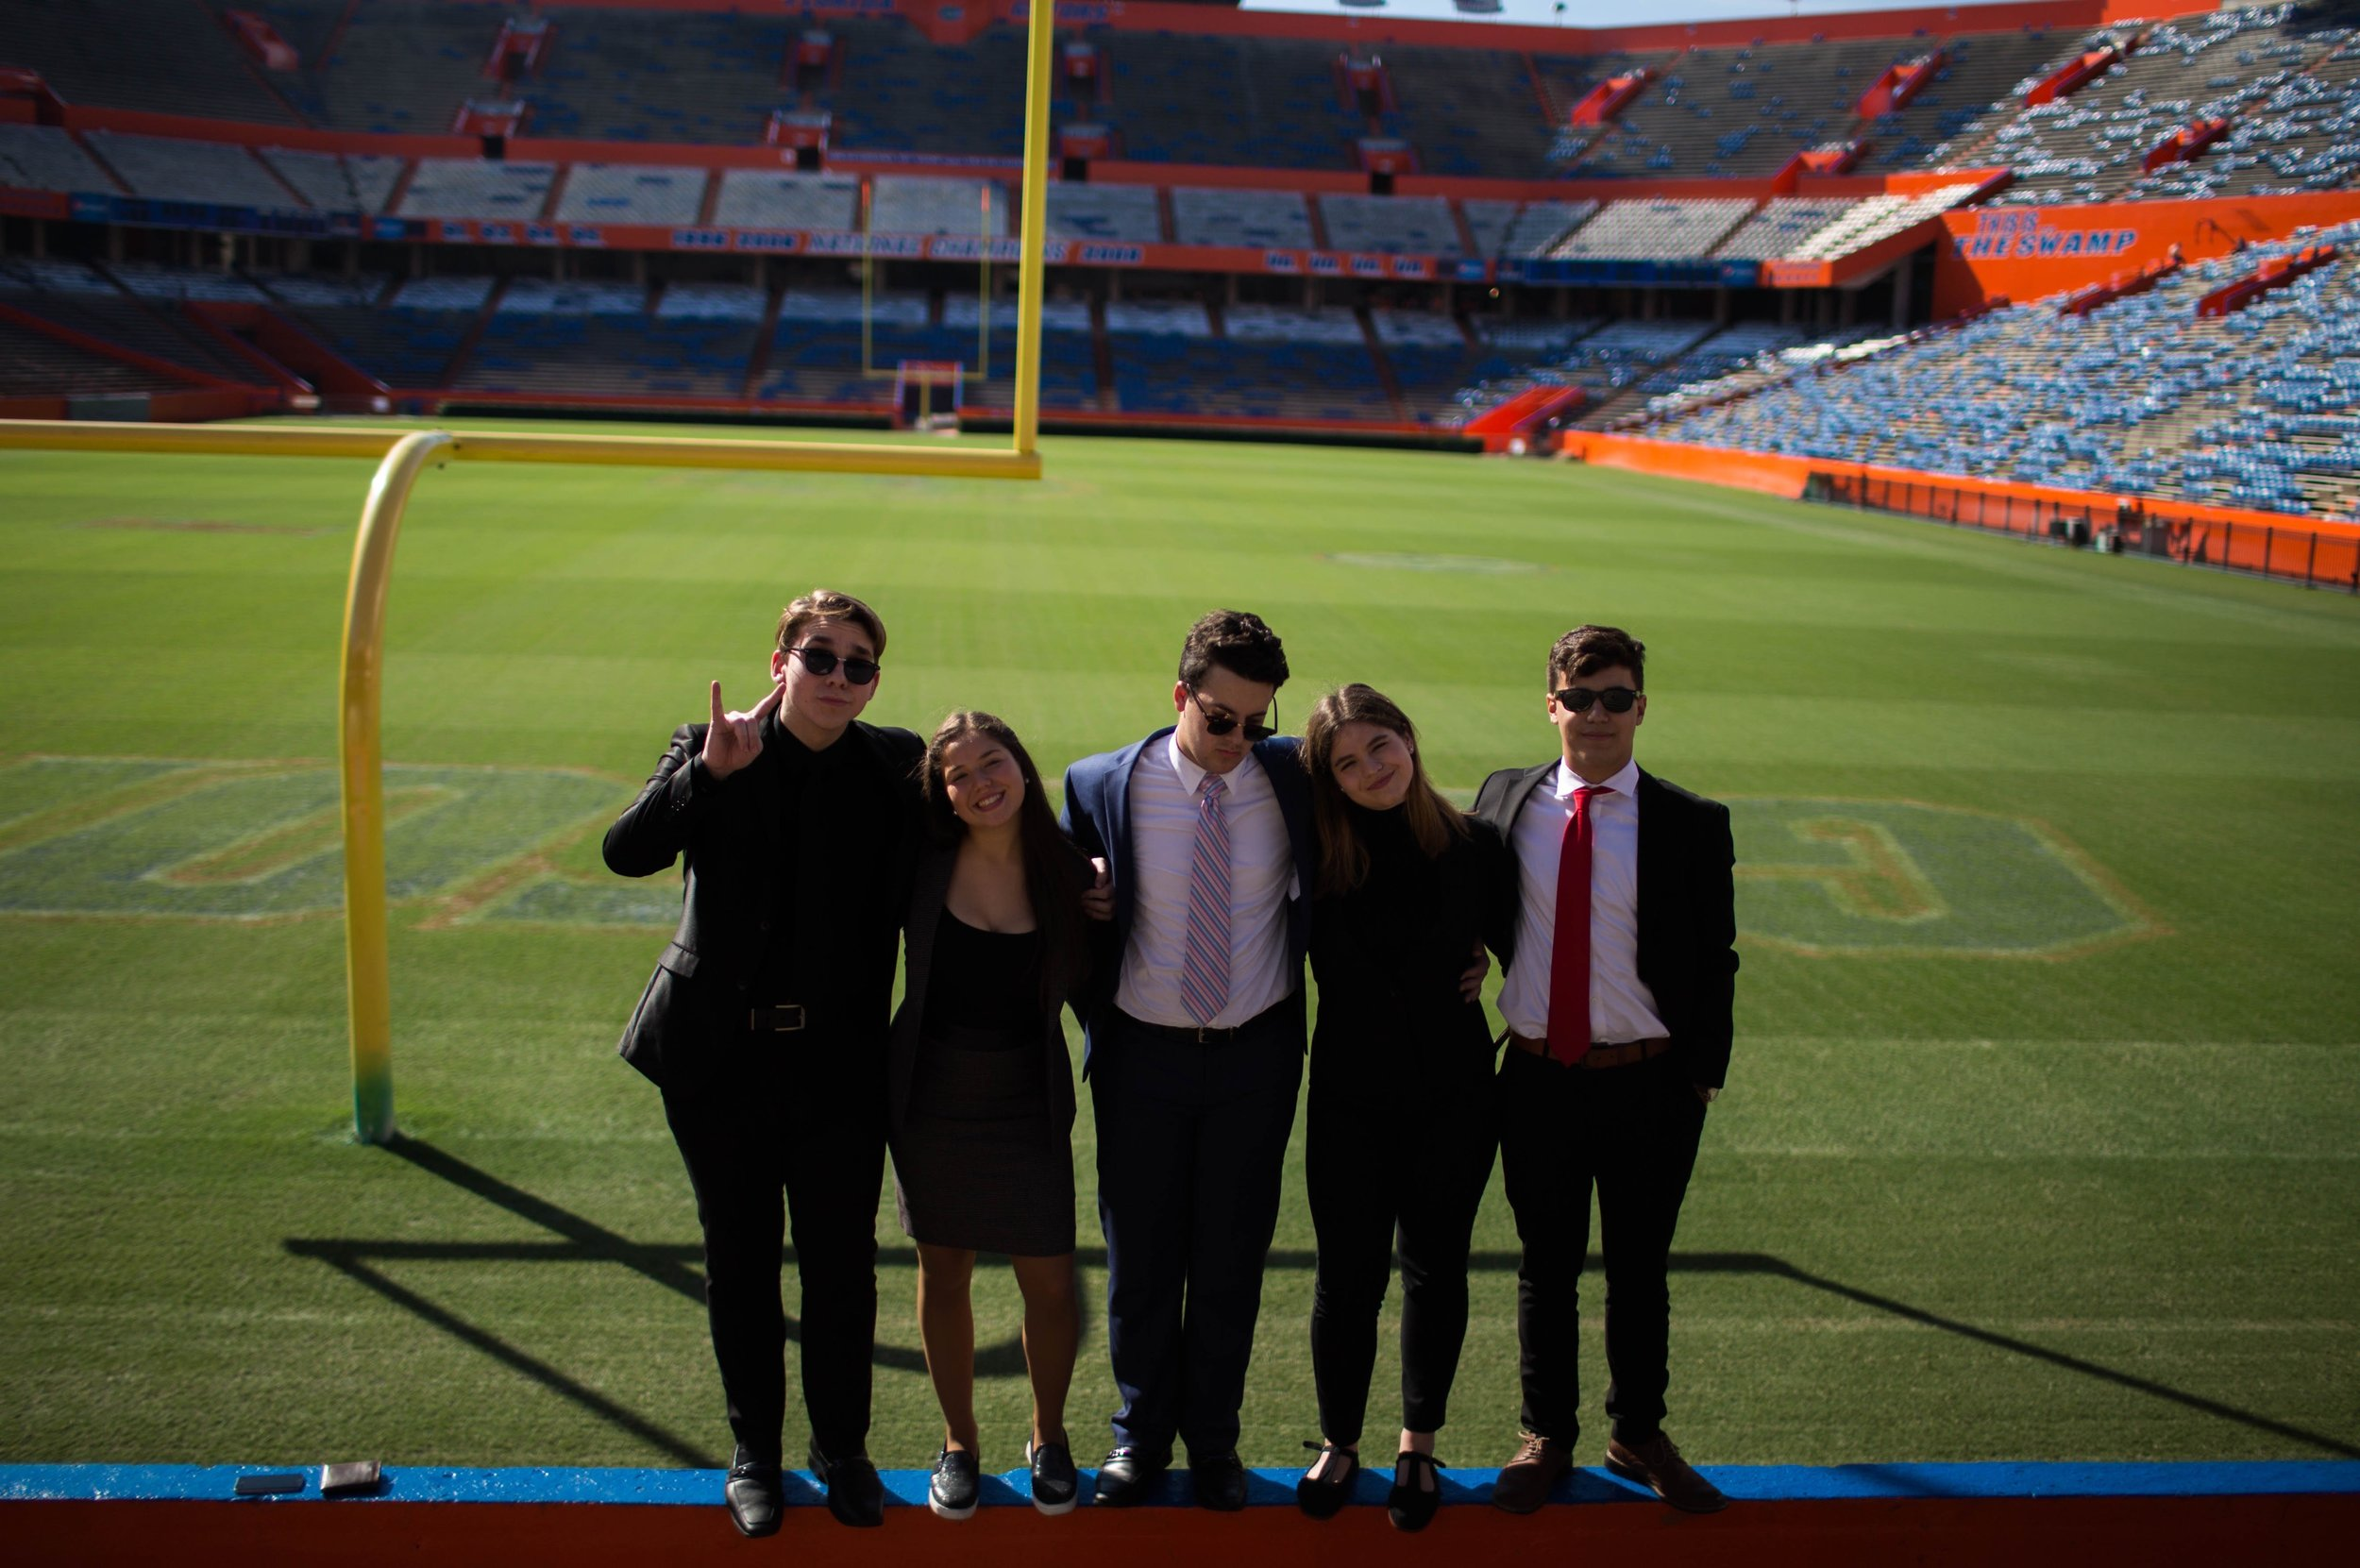 (left to right) Alejandro Cuellar, Andrea Lopez, Matthew Gonzalez, Marcela Ferran, and Alex Duarte at The Swamp for Blue Key 2016 in October.